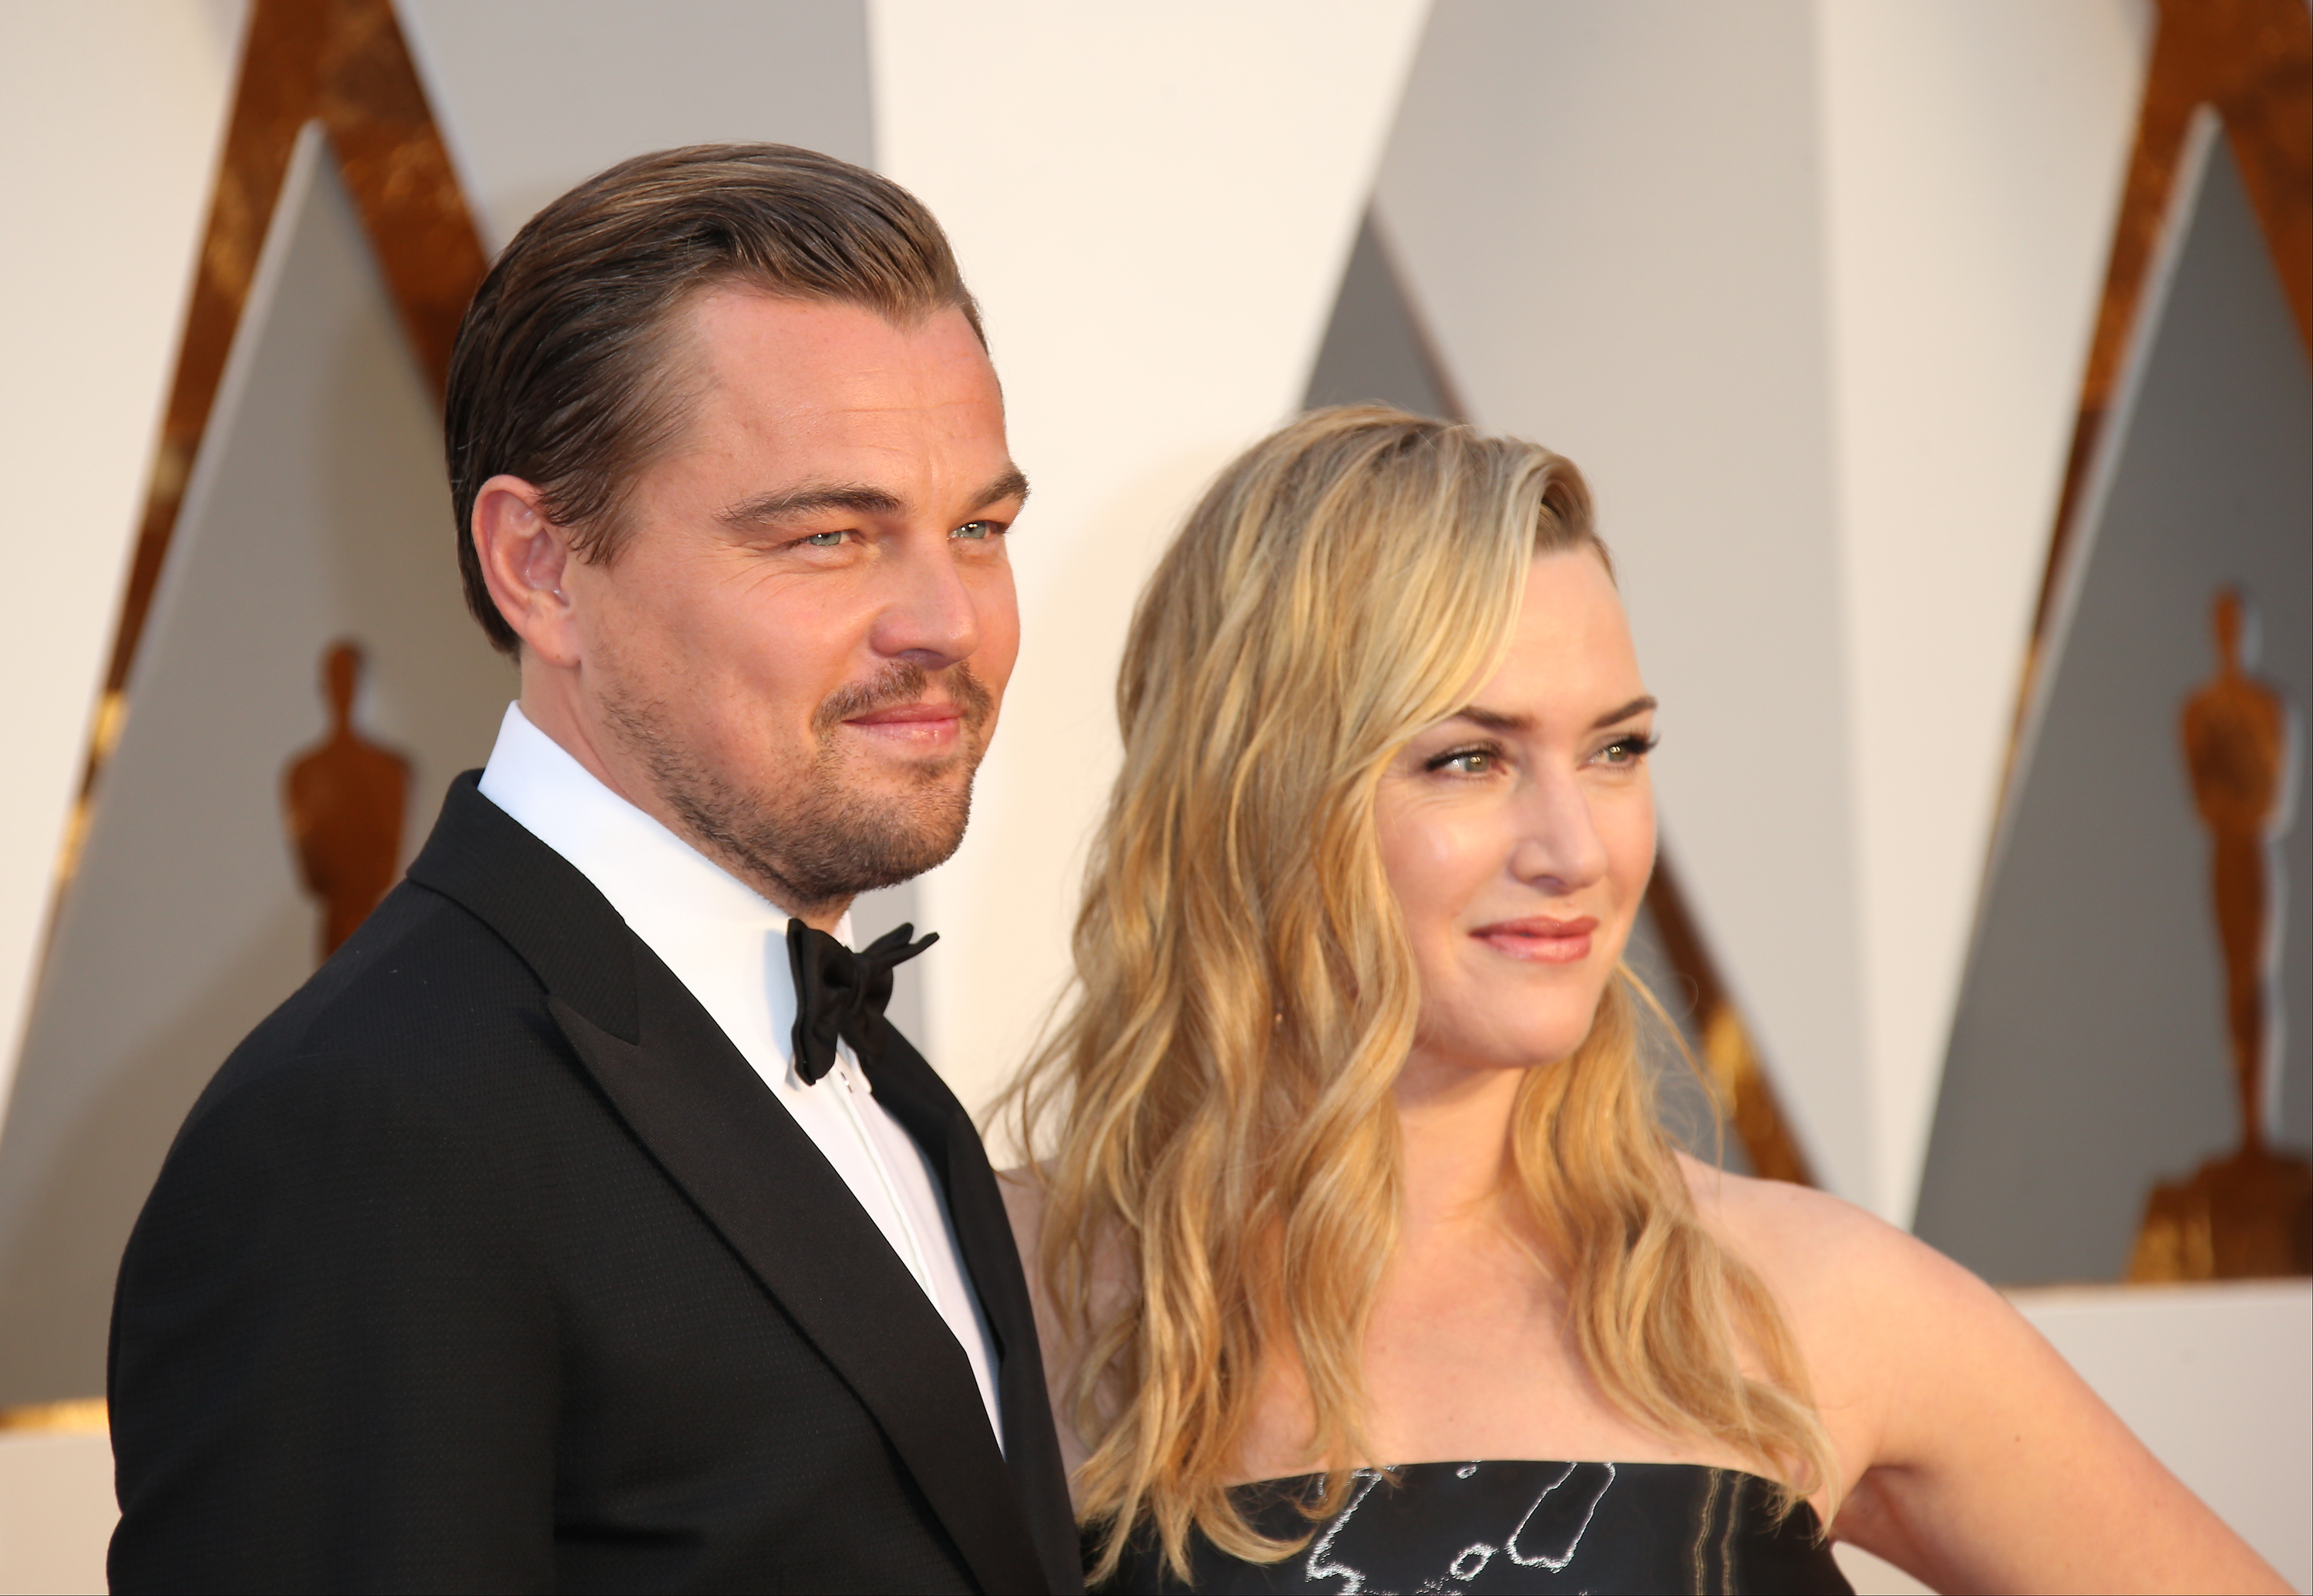 (L-R) Actors Leonardo DiCaprio and Kate Winslet attend the 88th Annual Academy Awards at Hollywood & Highland Center on February 28, 2016 in Hollywood, California.